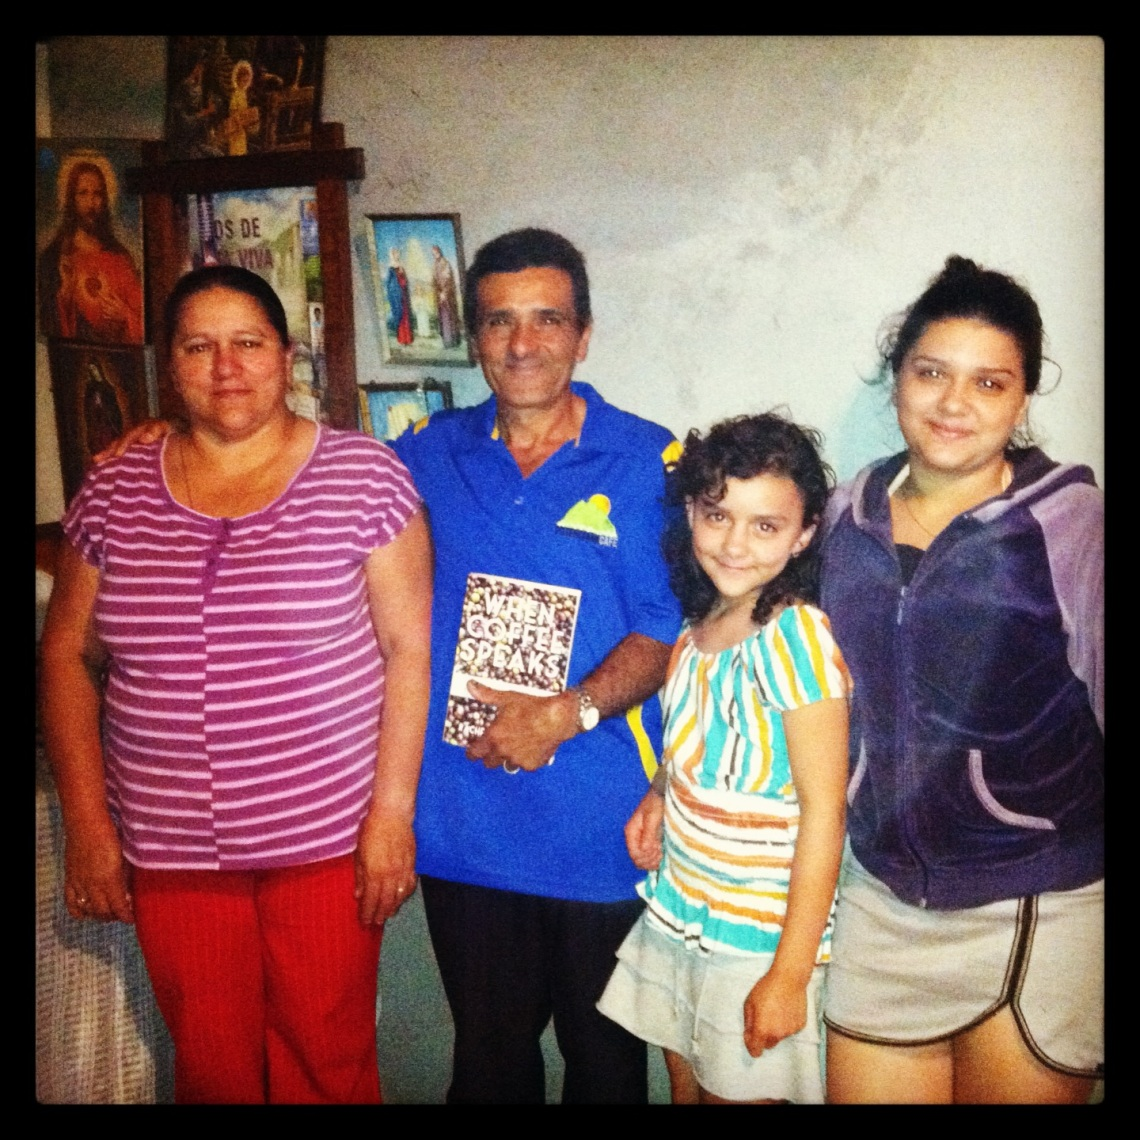 Luis Angel with his family at their home in La Potenciana